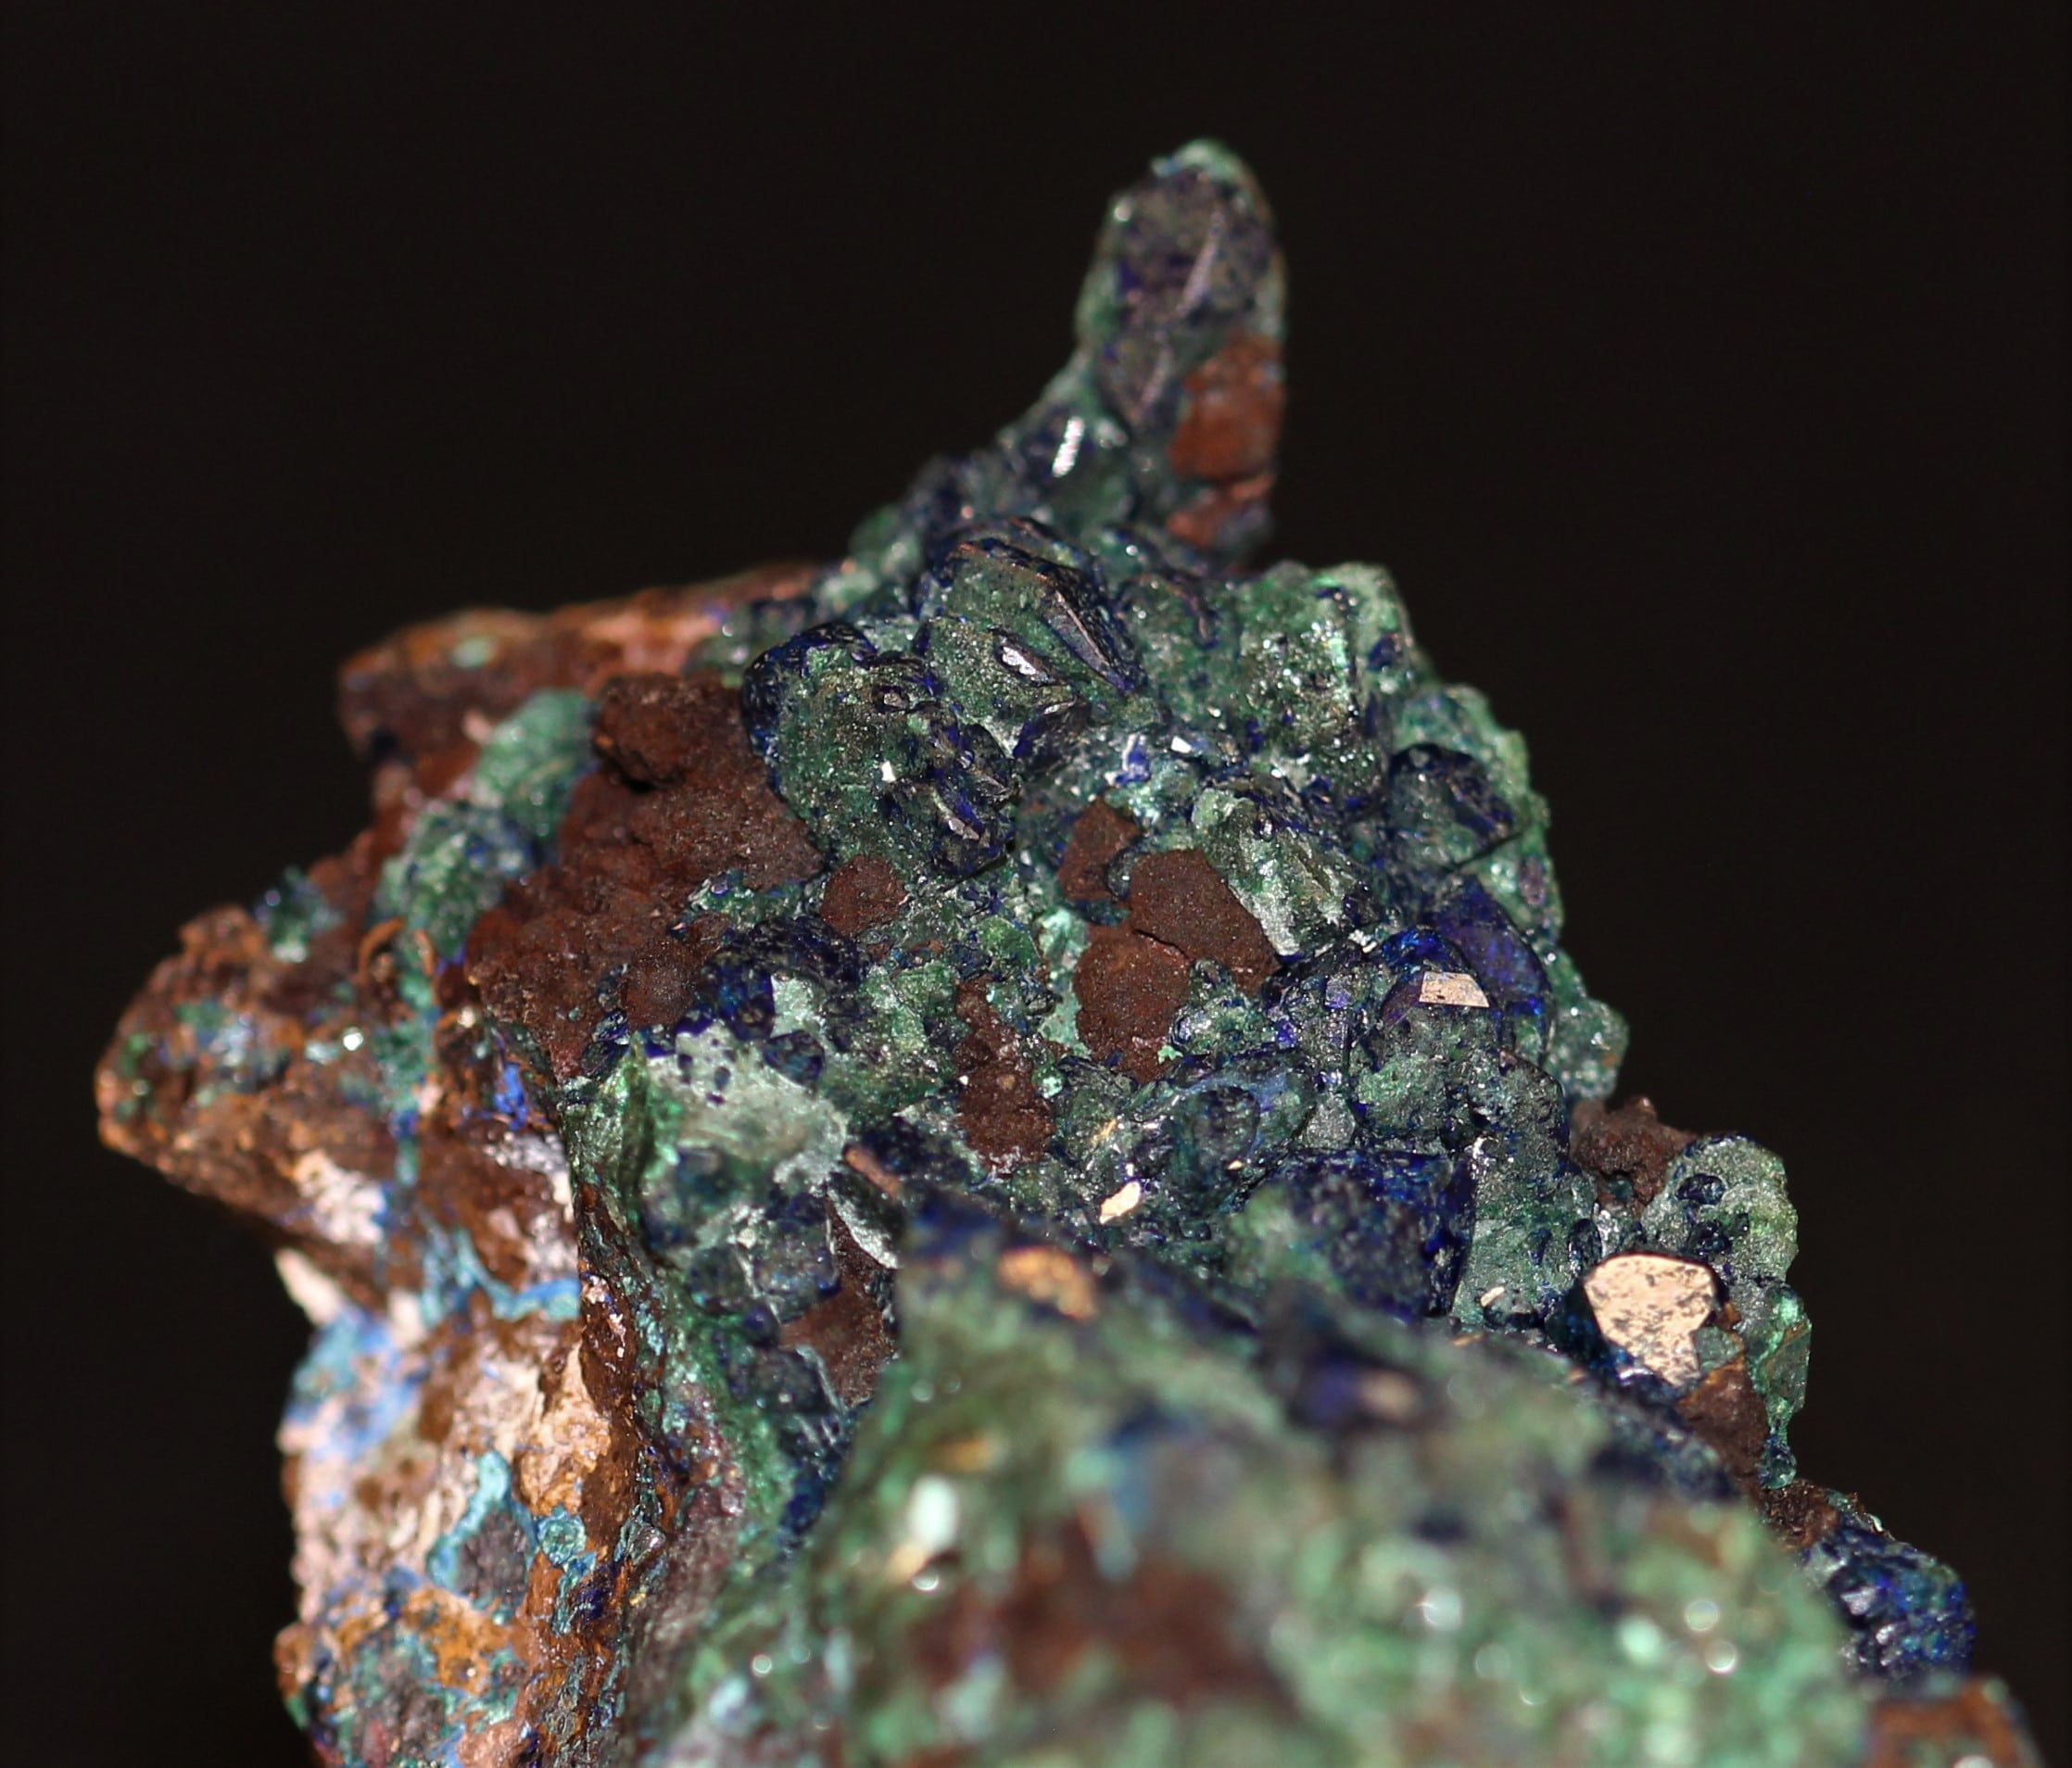 Azurite et malachite, ex-collection de l'académie de Philadelphie, Chessy-les-Mines.